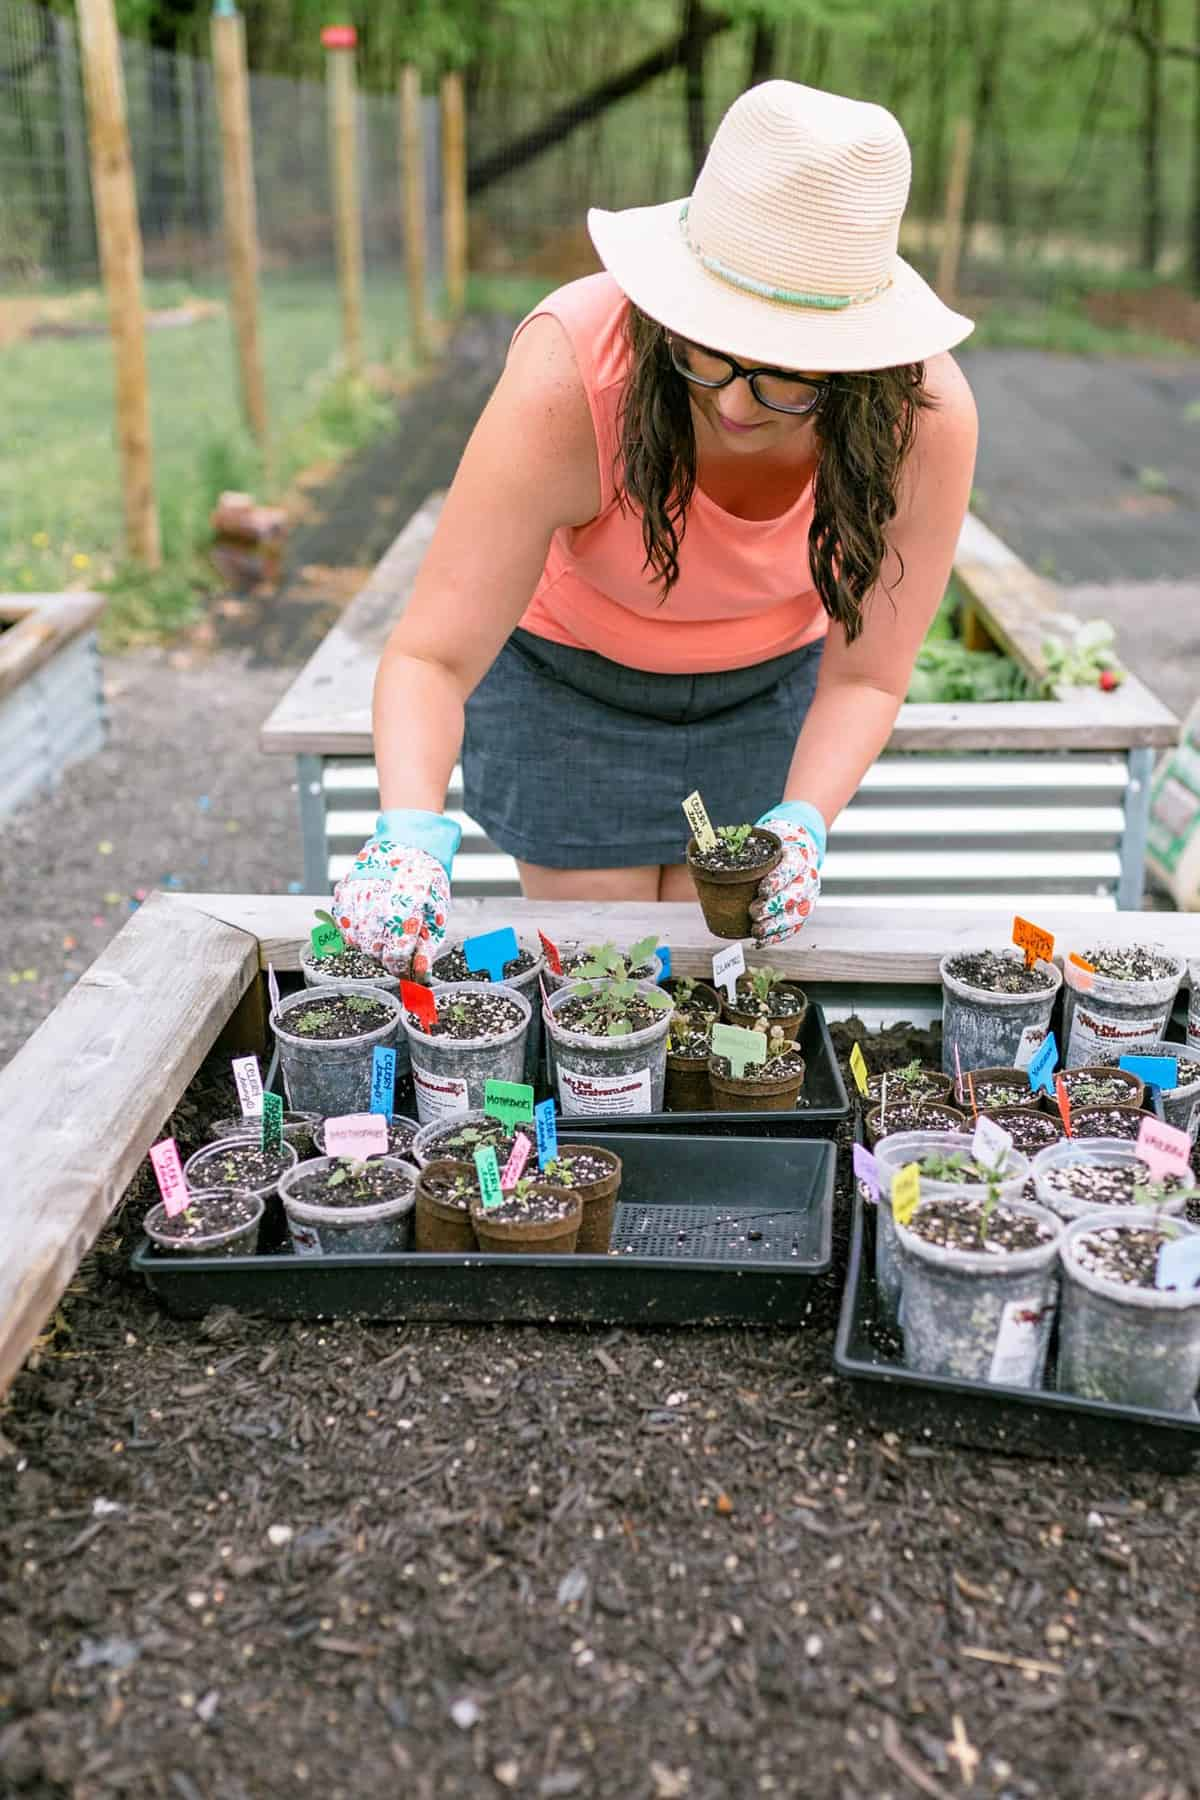 A woman tends to seedlings on a tray in a garden bed.